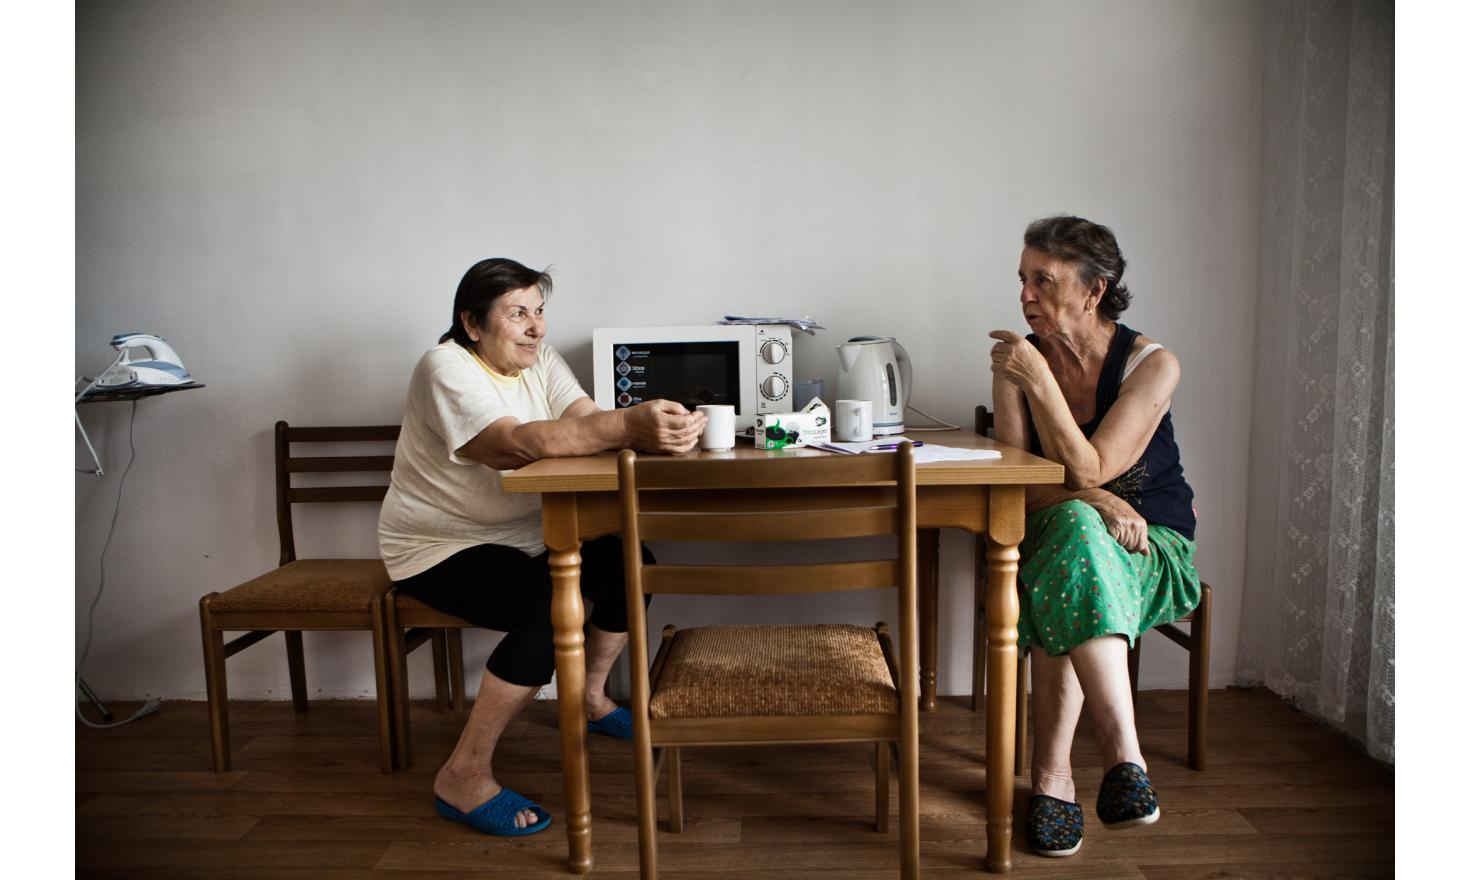 Tamara and Anna. Anna is Svetlana's mother and Sacha and Micha's grandmother (their father remained in Donetsk: see previous photo) . Tamara never misses out on an opportunity to come to the kitchen [...] Contact the agency for complete testimony